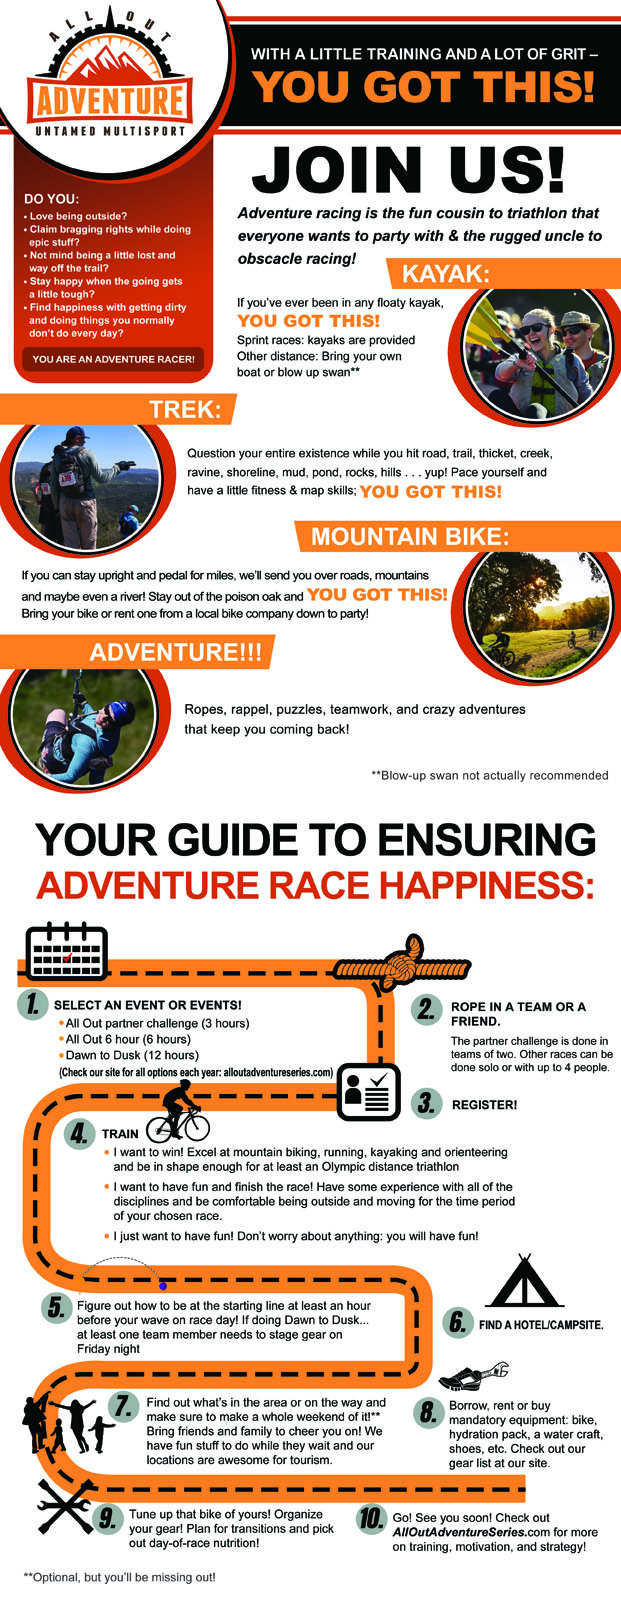 adventure racing kayak bike trek navigation orienteering